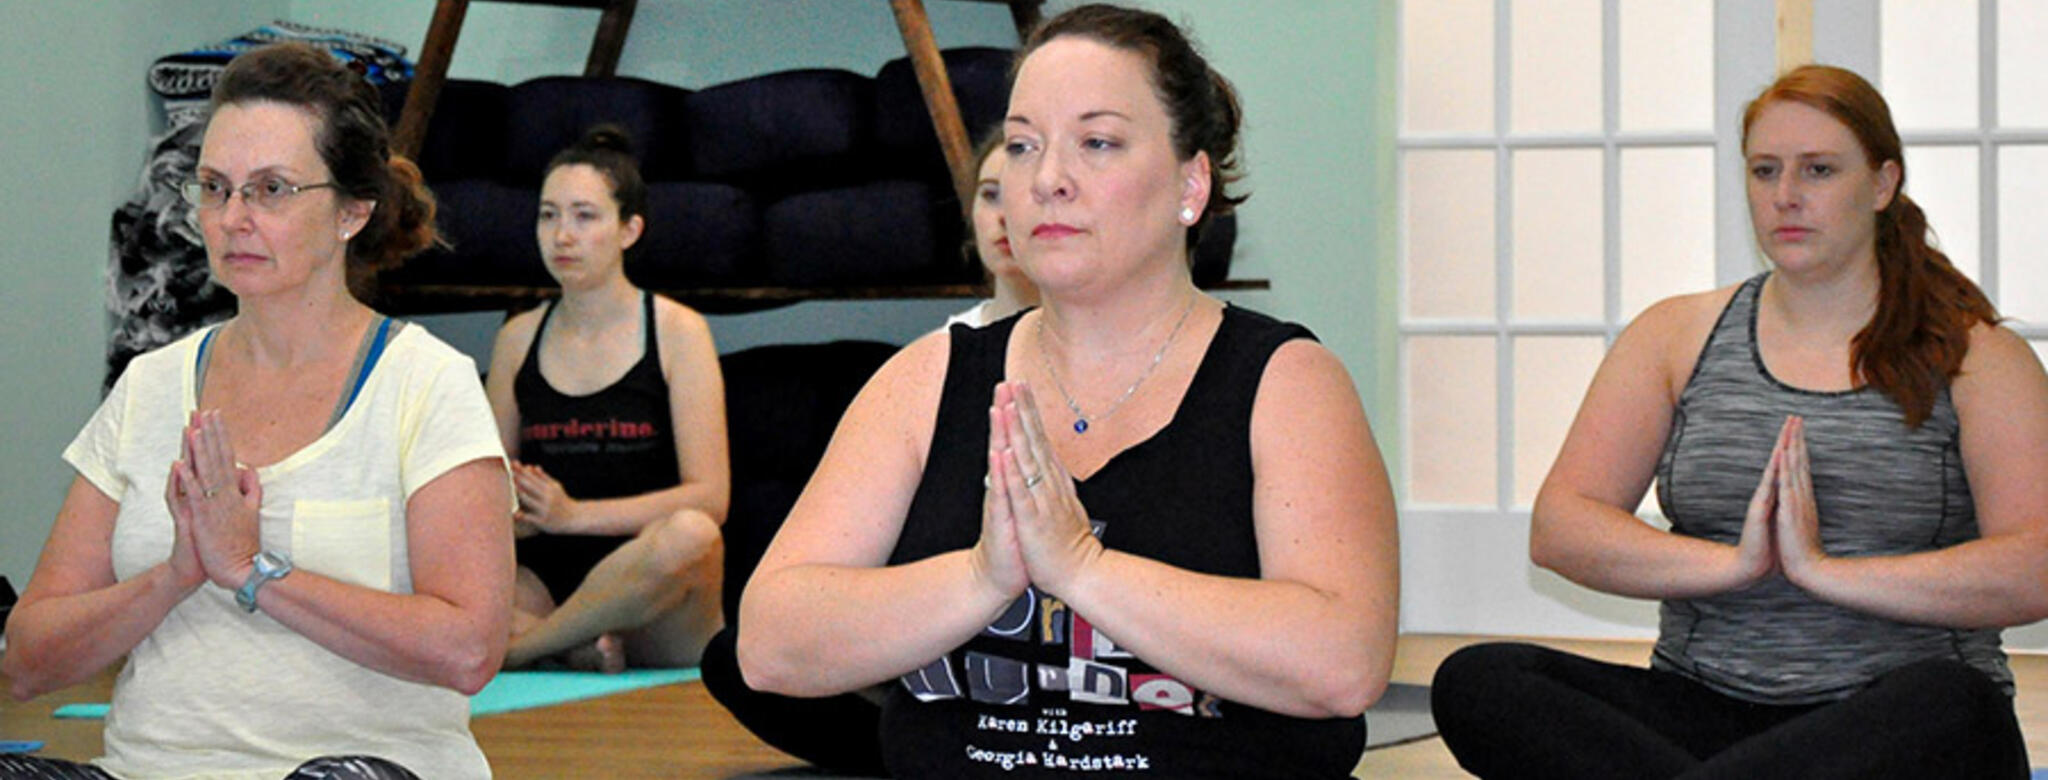 Murderinos practicing yoga at charity event for End the Backlog